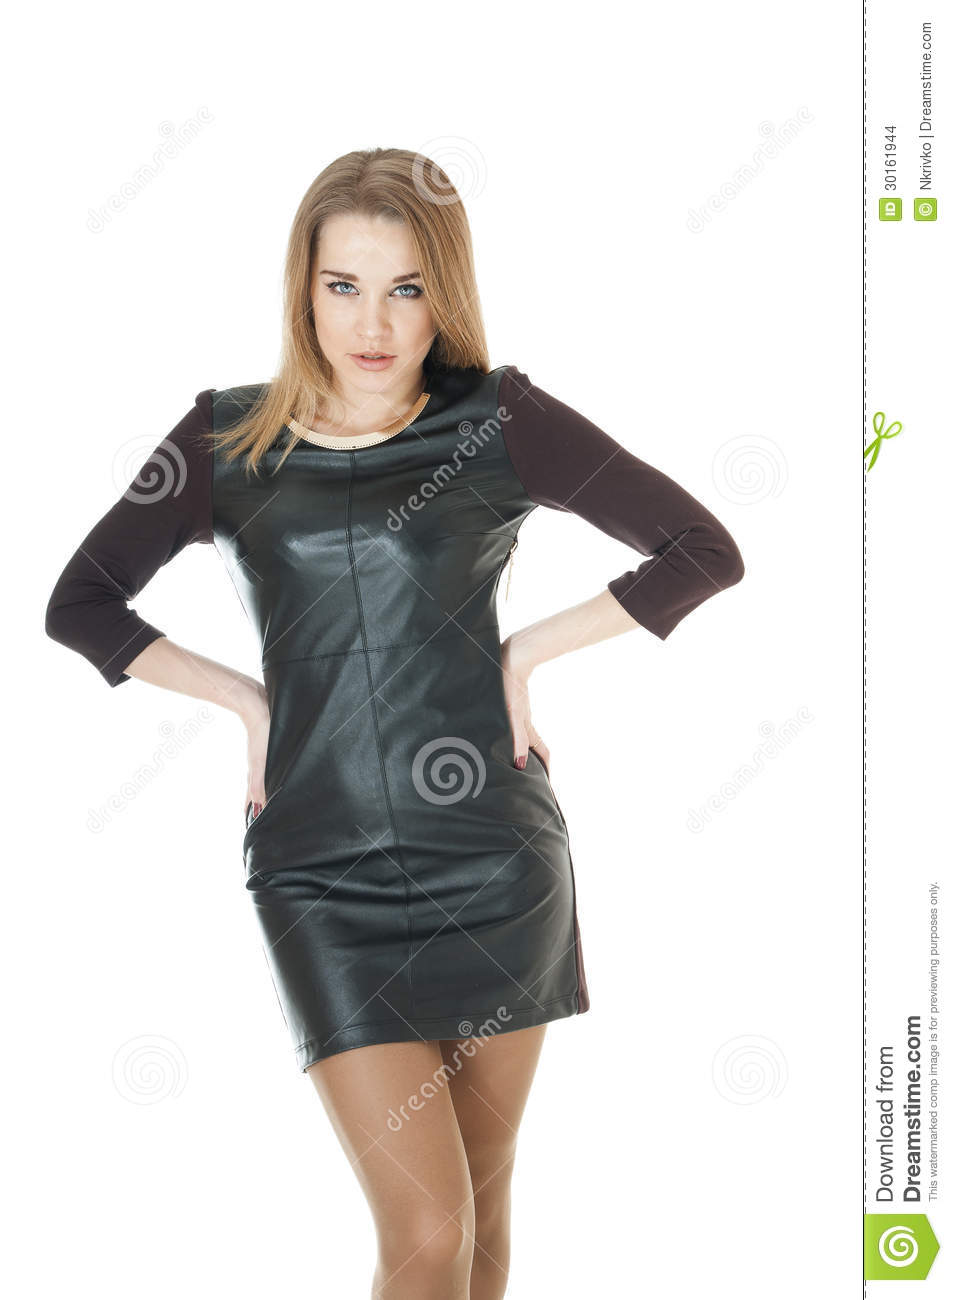 Elegant Woman Wearing Leather Short Dress. Stock Images ...